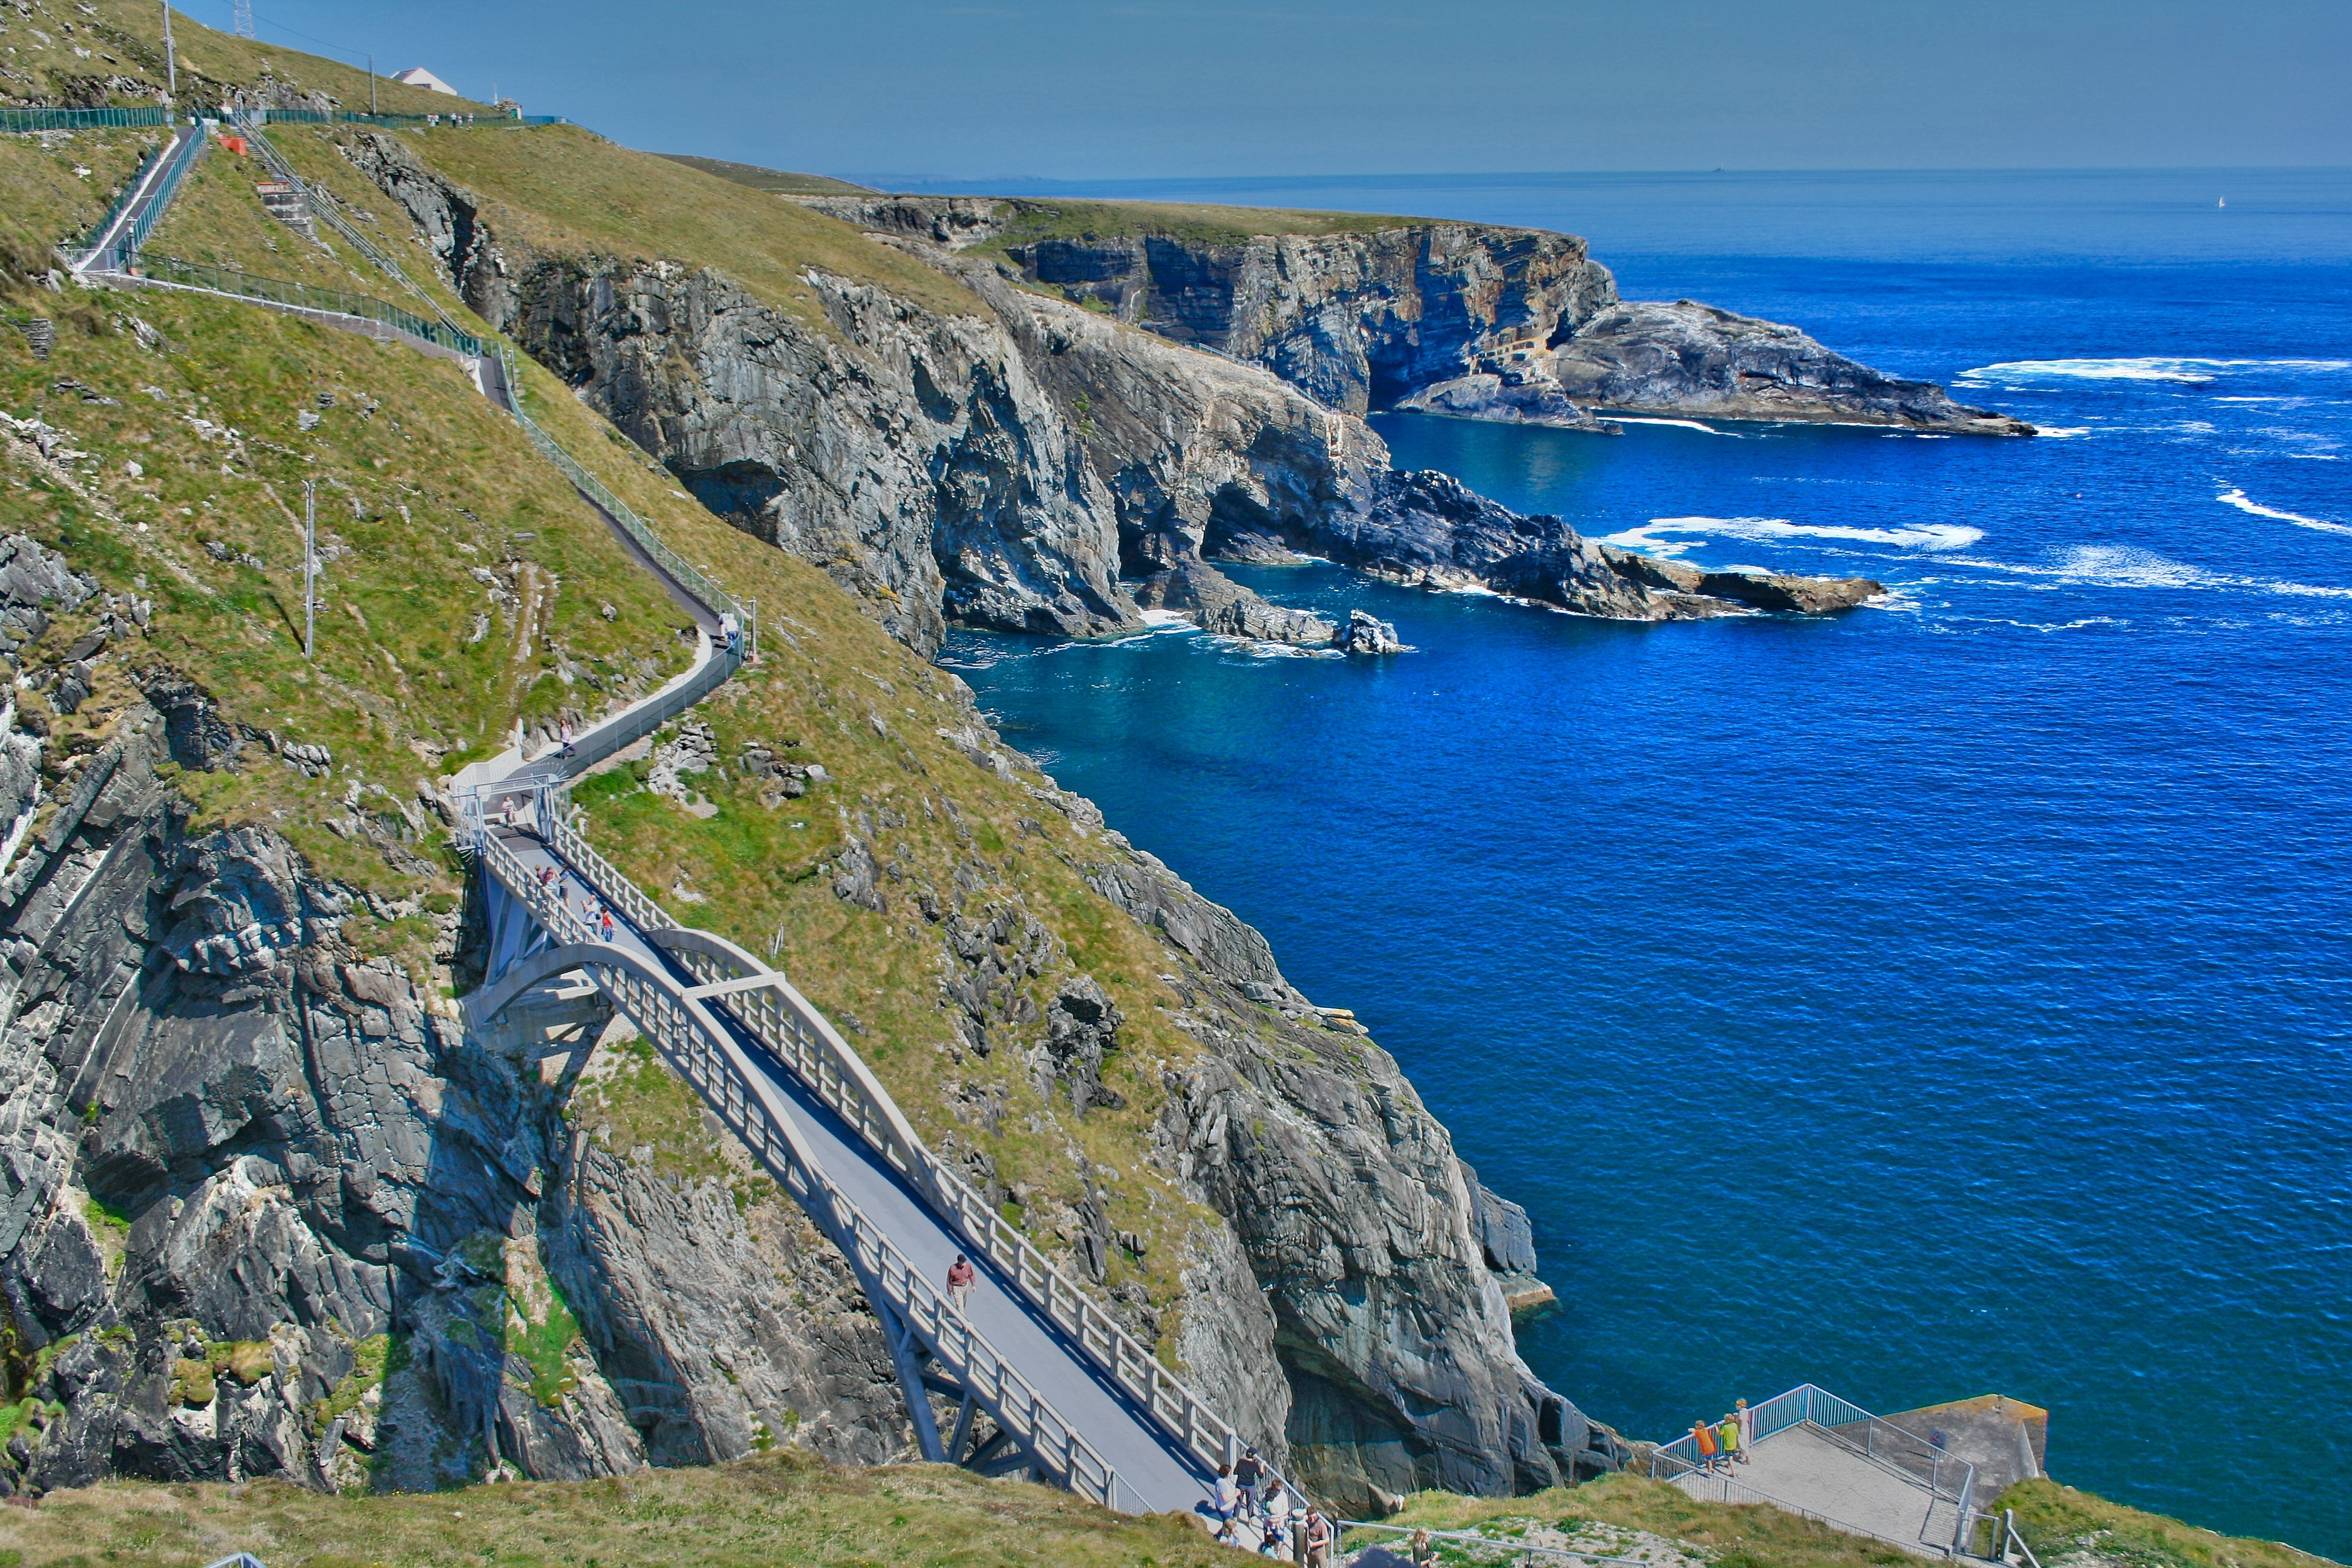 A stunning footbridge connects Mizen Head to a nearby island above deep blue waters